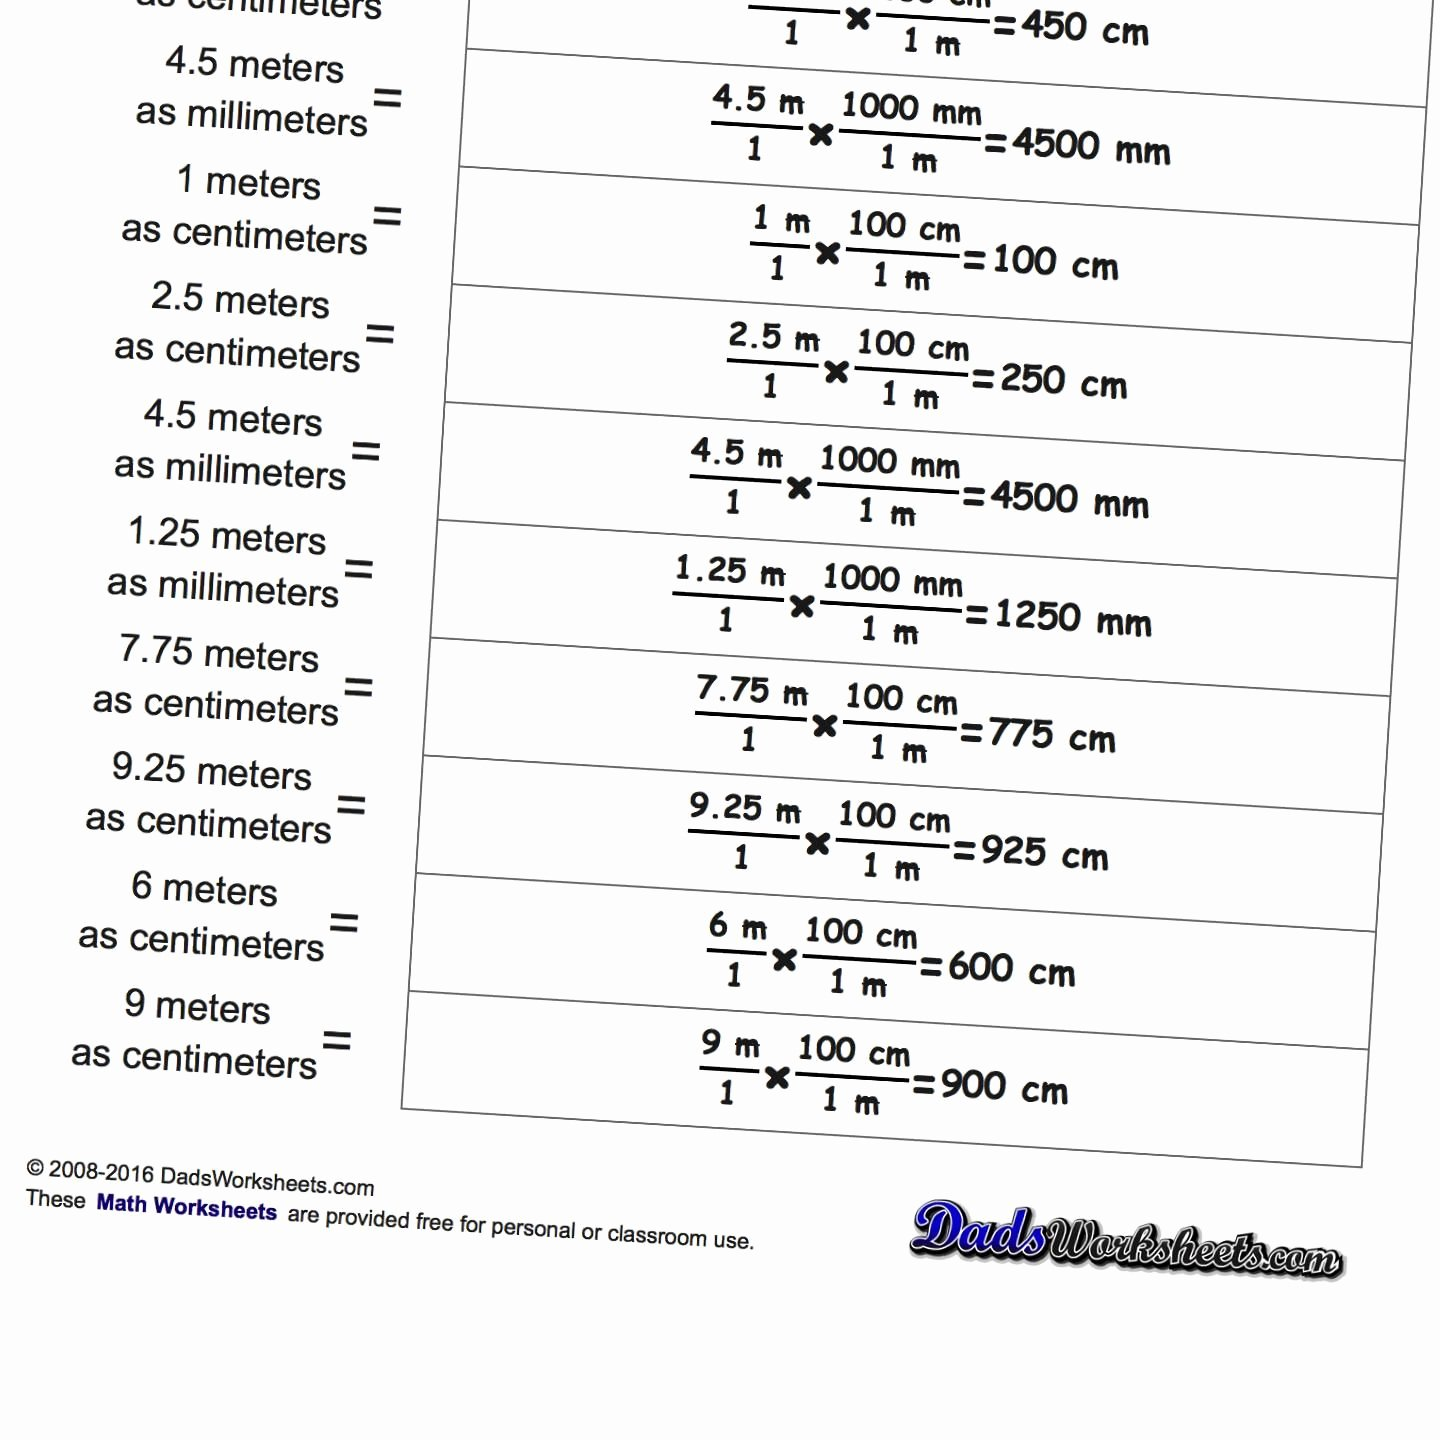 Metric Conversion Worksheet Answer Key Awesome Metric Si Unit Conversions This Page Contains Links to